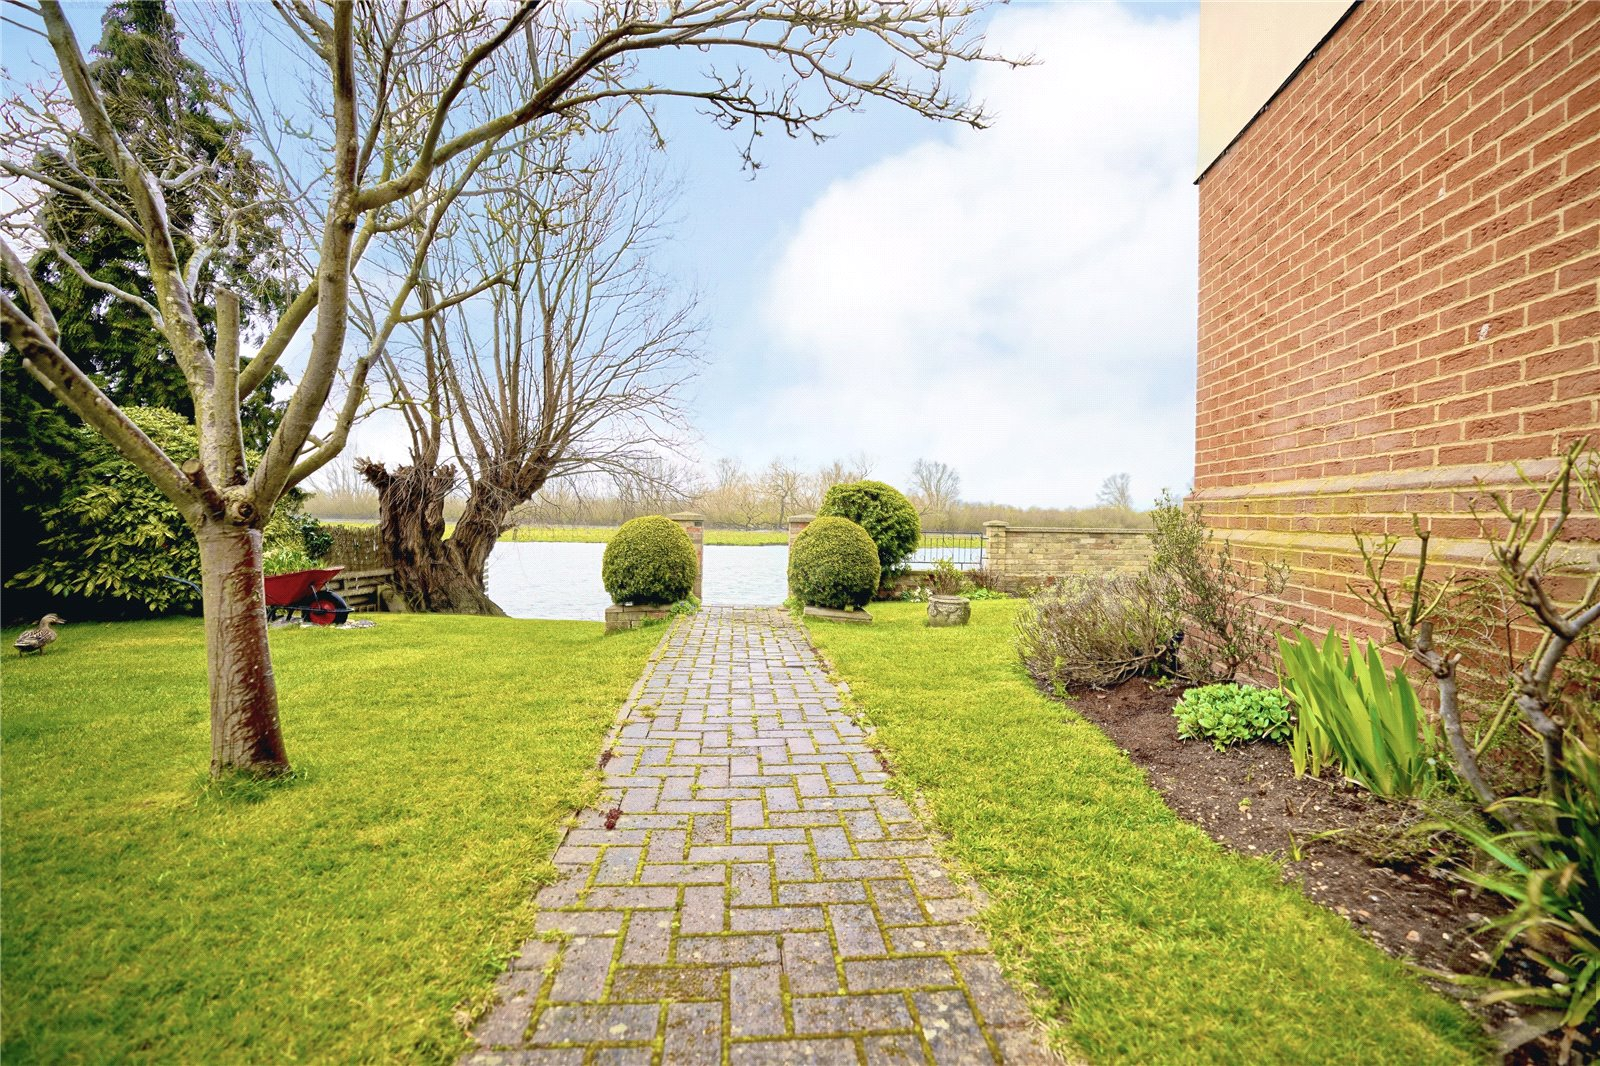 2 bed apartment for sale in Earith, PE28 3PP 11